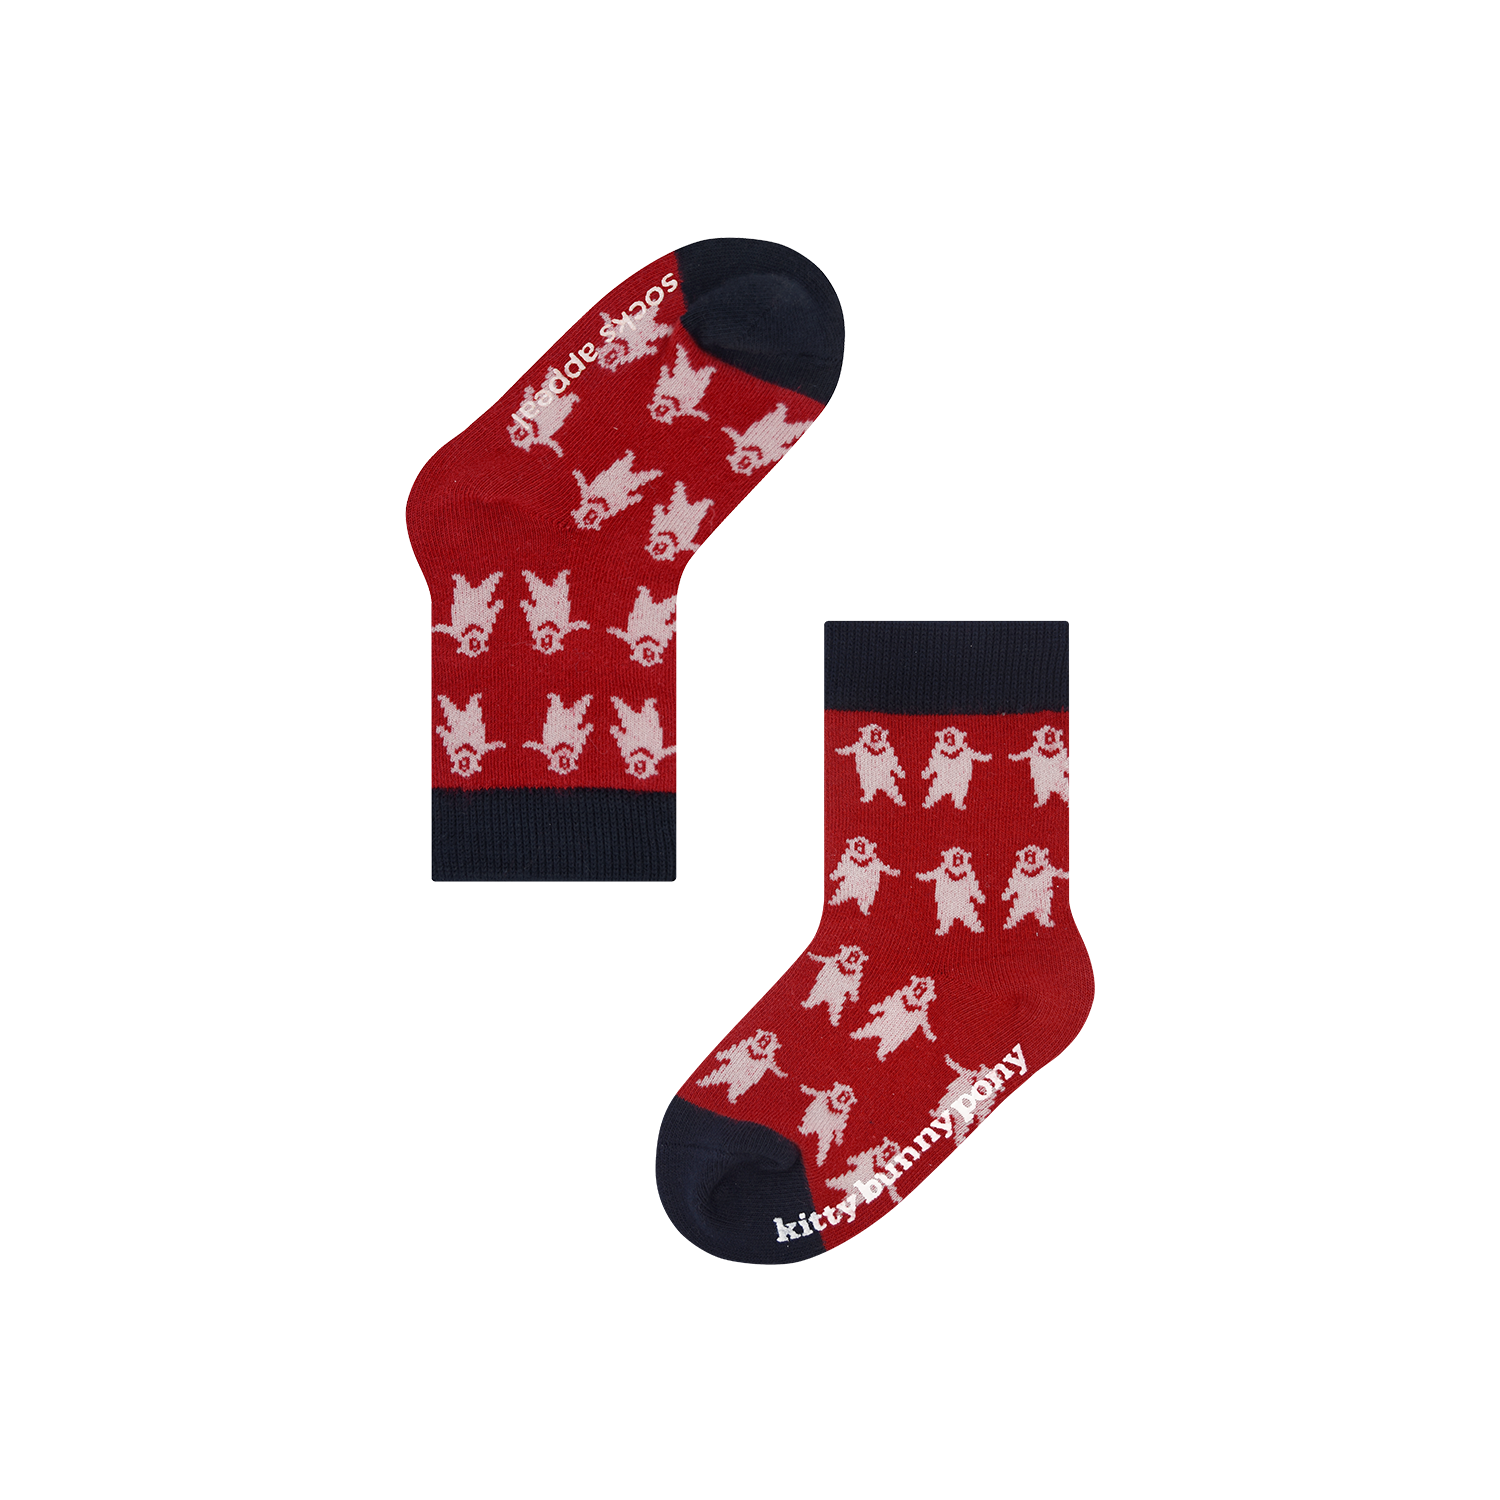 Socks Appeal X kittybunnypony CBB Red Baby Socks